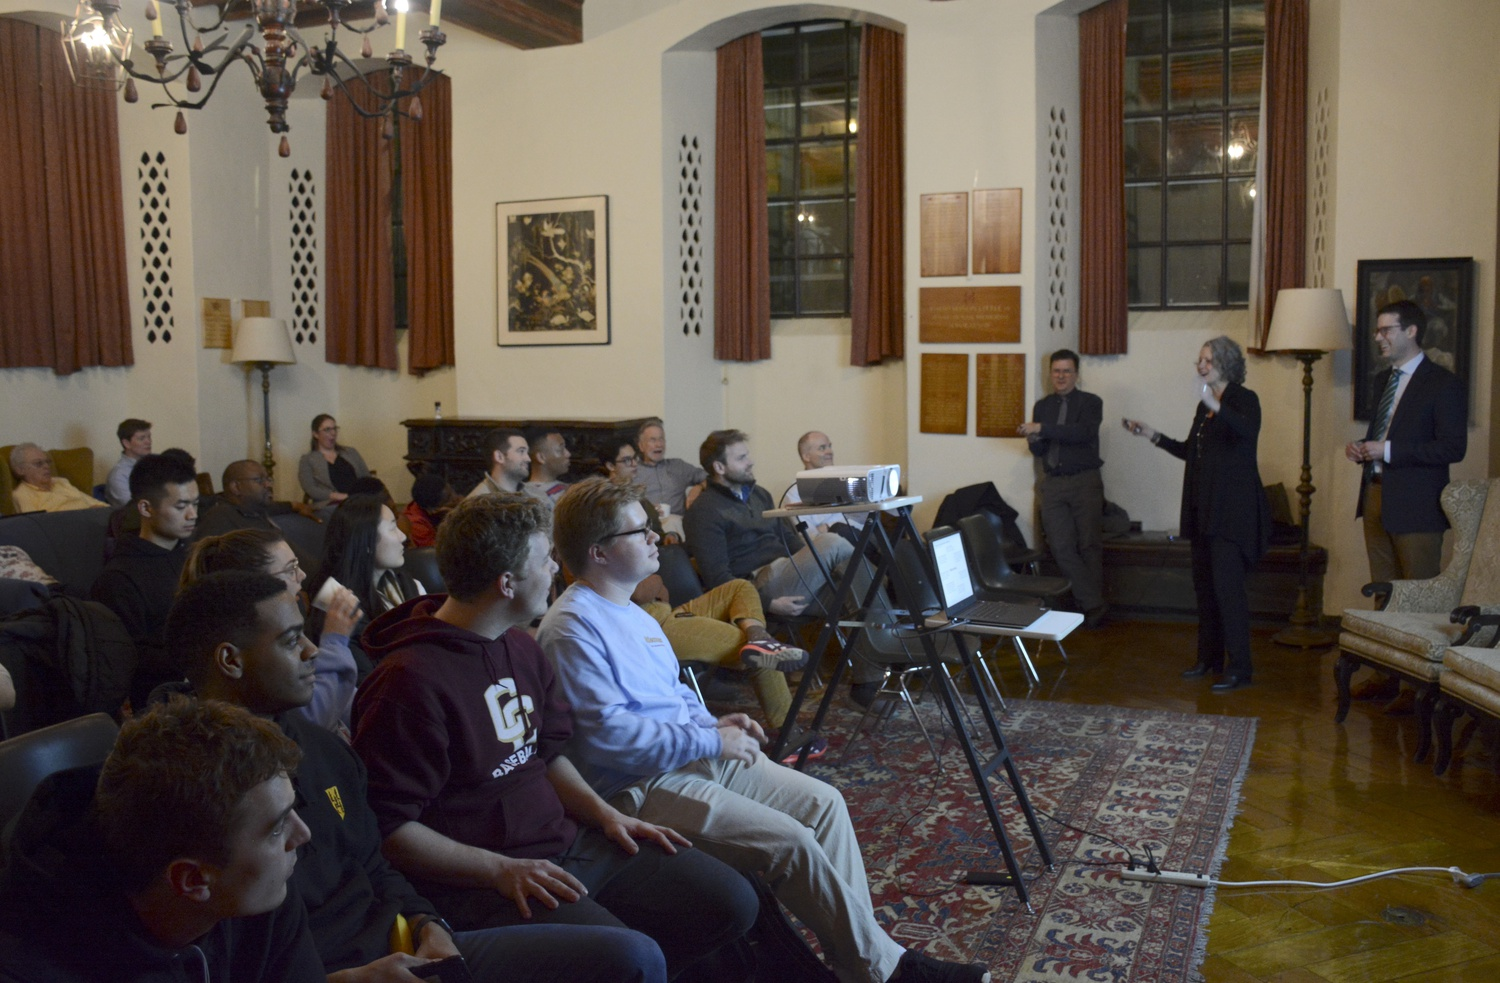 Members of Adams House met on Wednesday evening to hear and discuss updates on Adams's current construction.